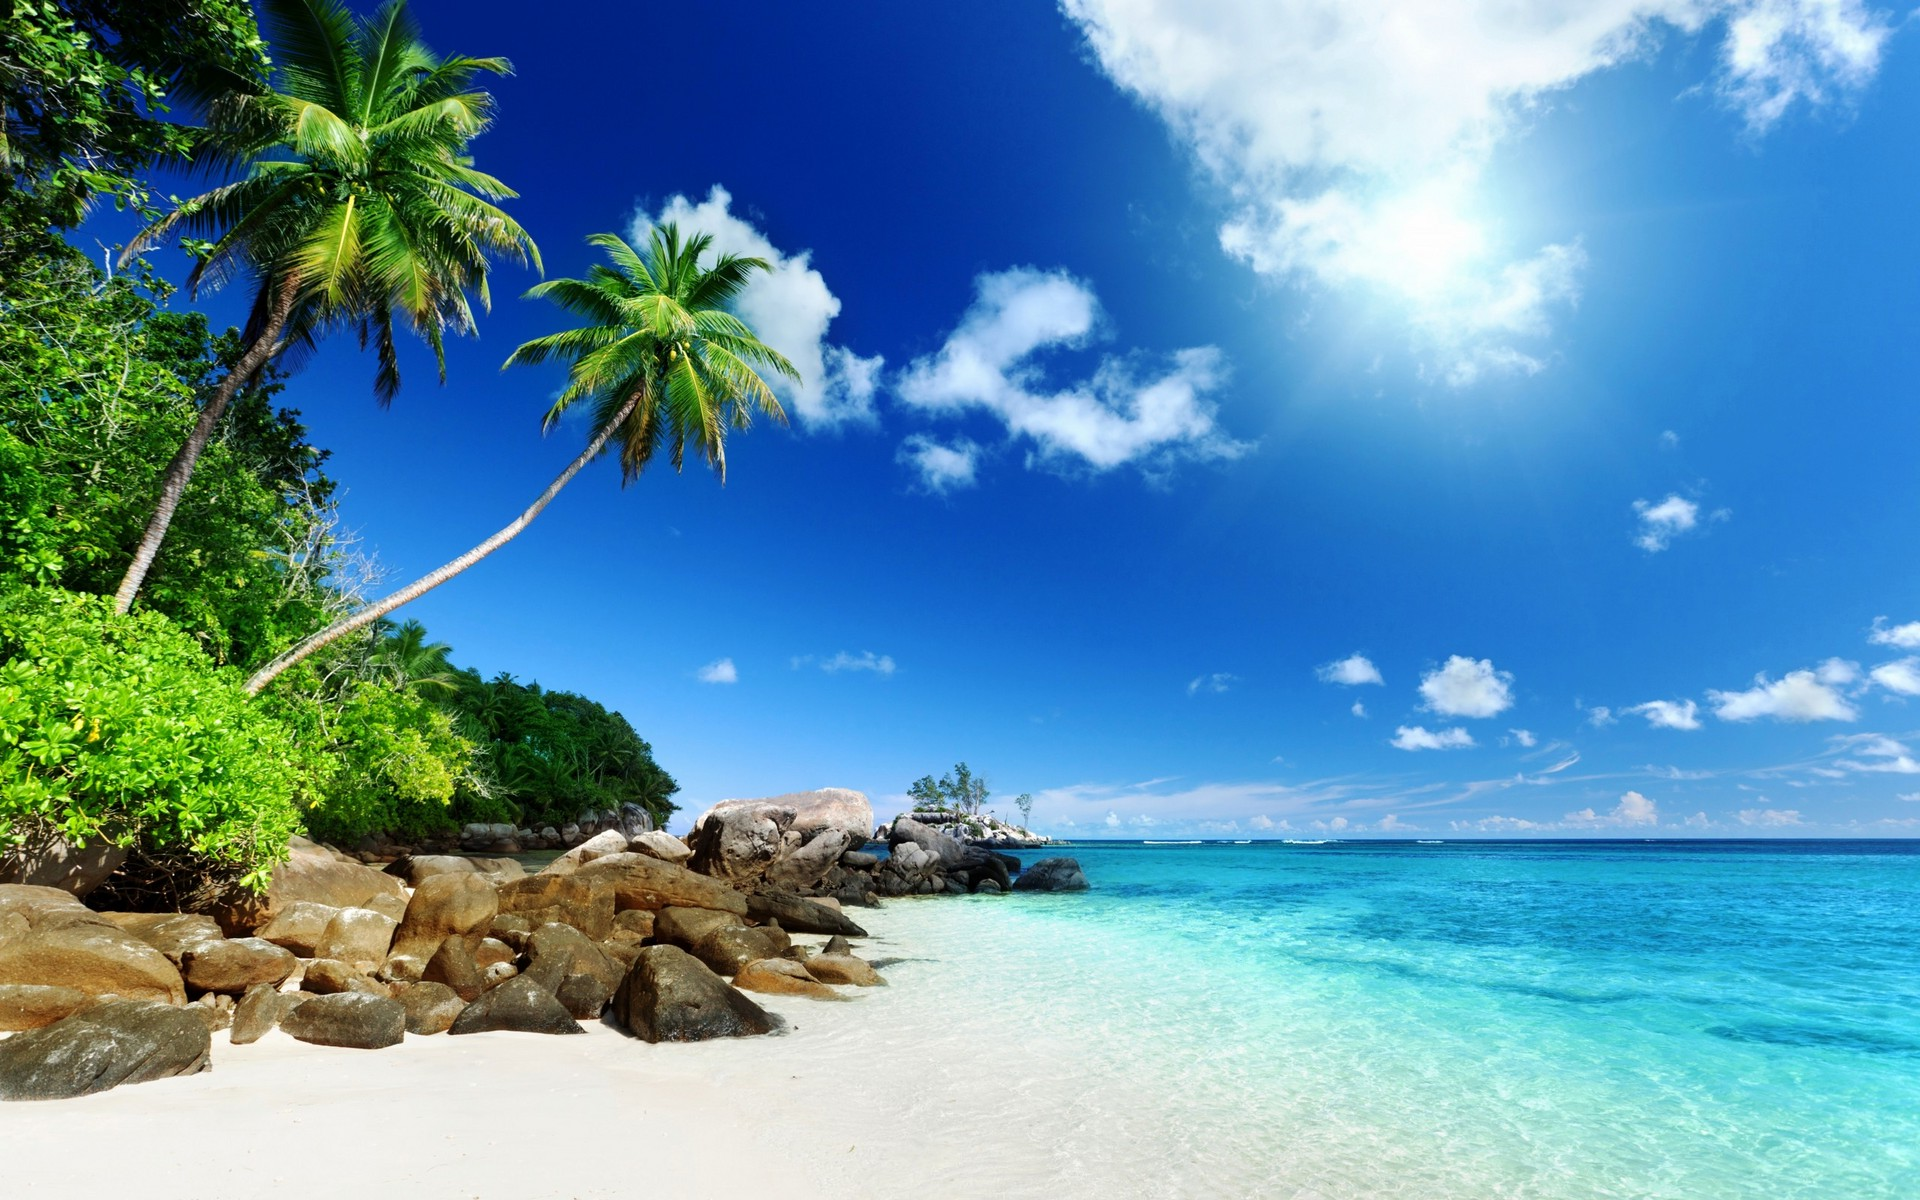 Hd Tropical Island Beach Paradise Wallpapers And Backgrounds: Island Desktop Wallpaper